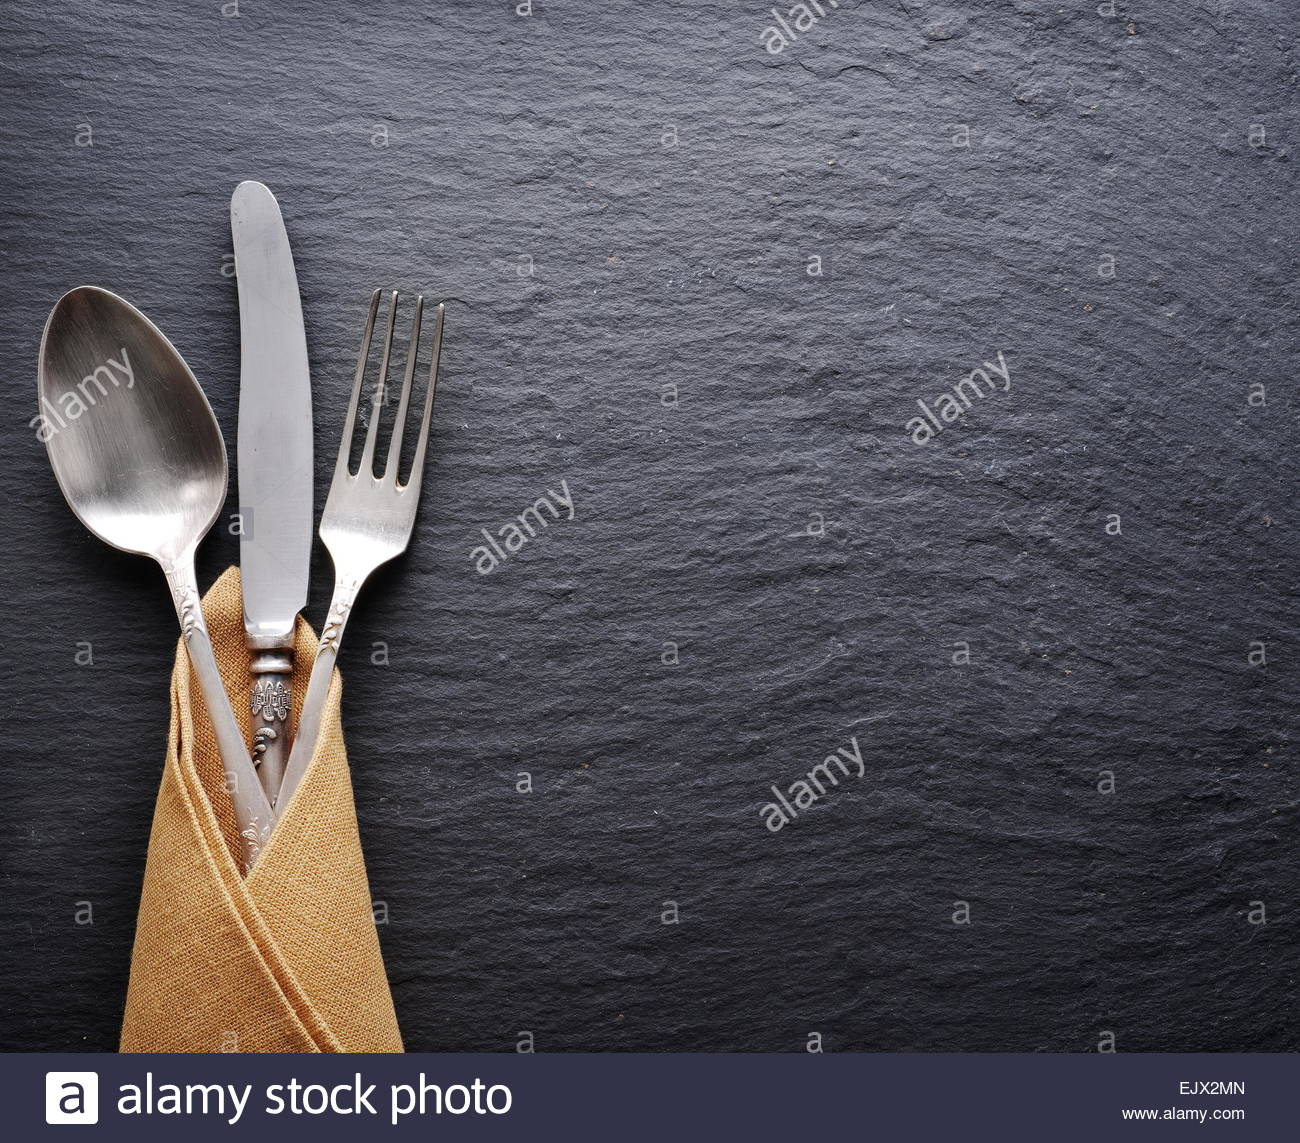 Silver cutlery on a dark gray background Stock Photo 80478181   Alamy 1300x1143